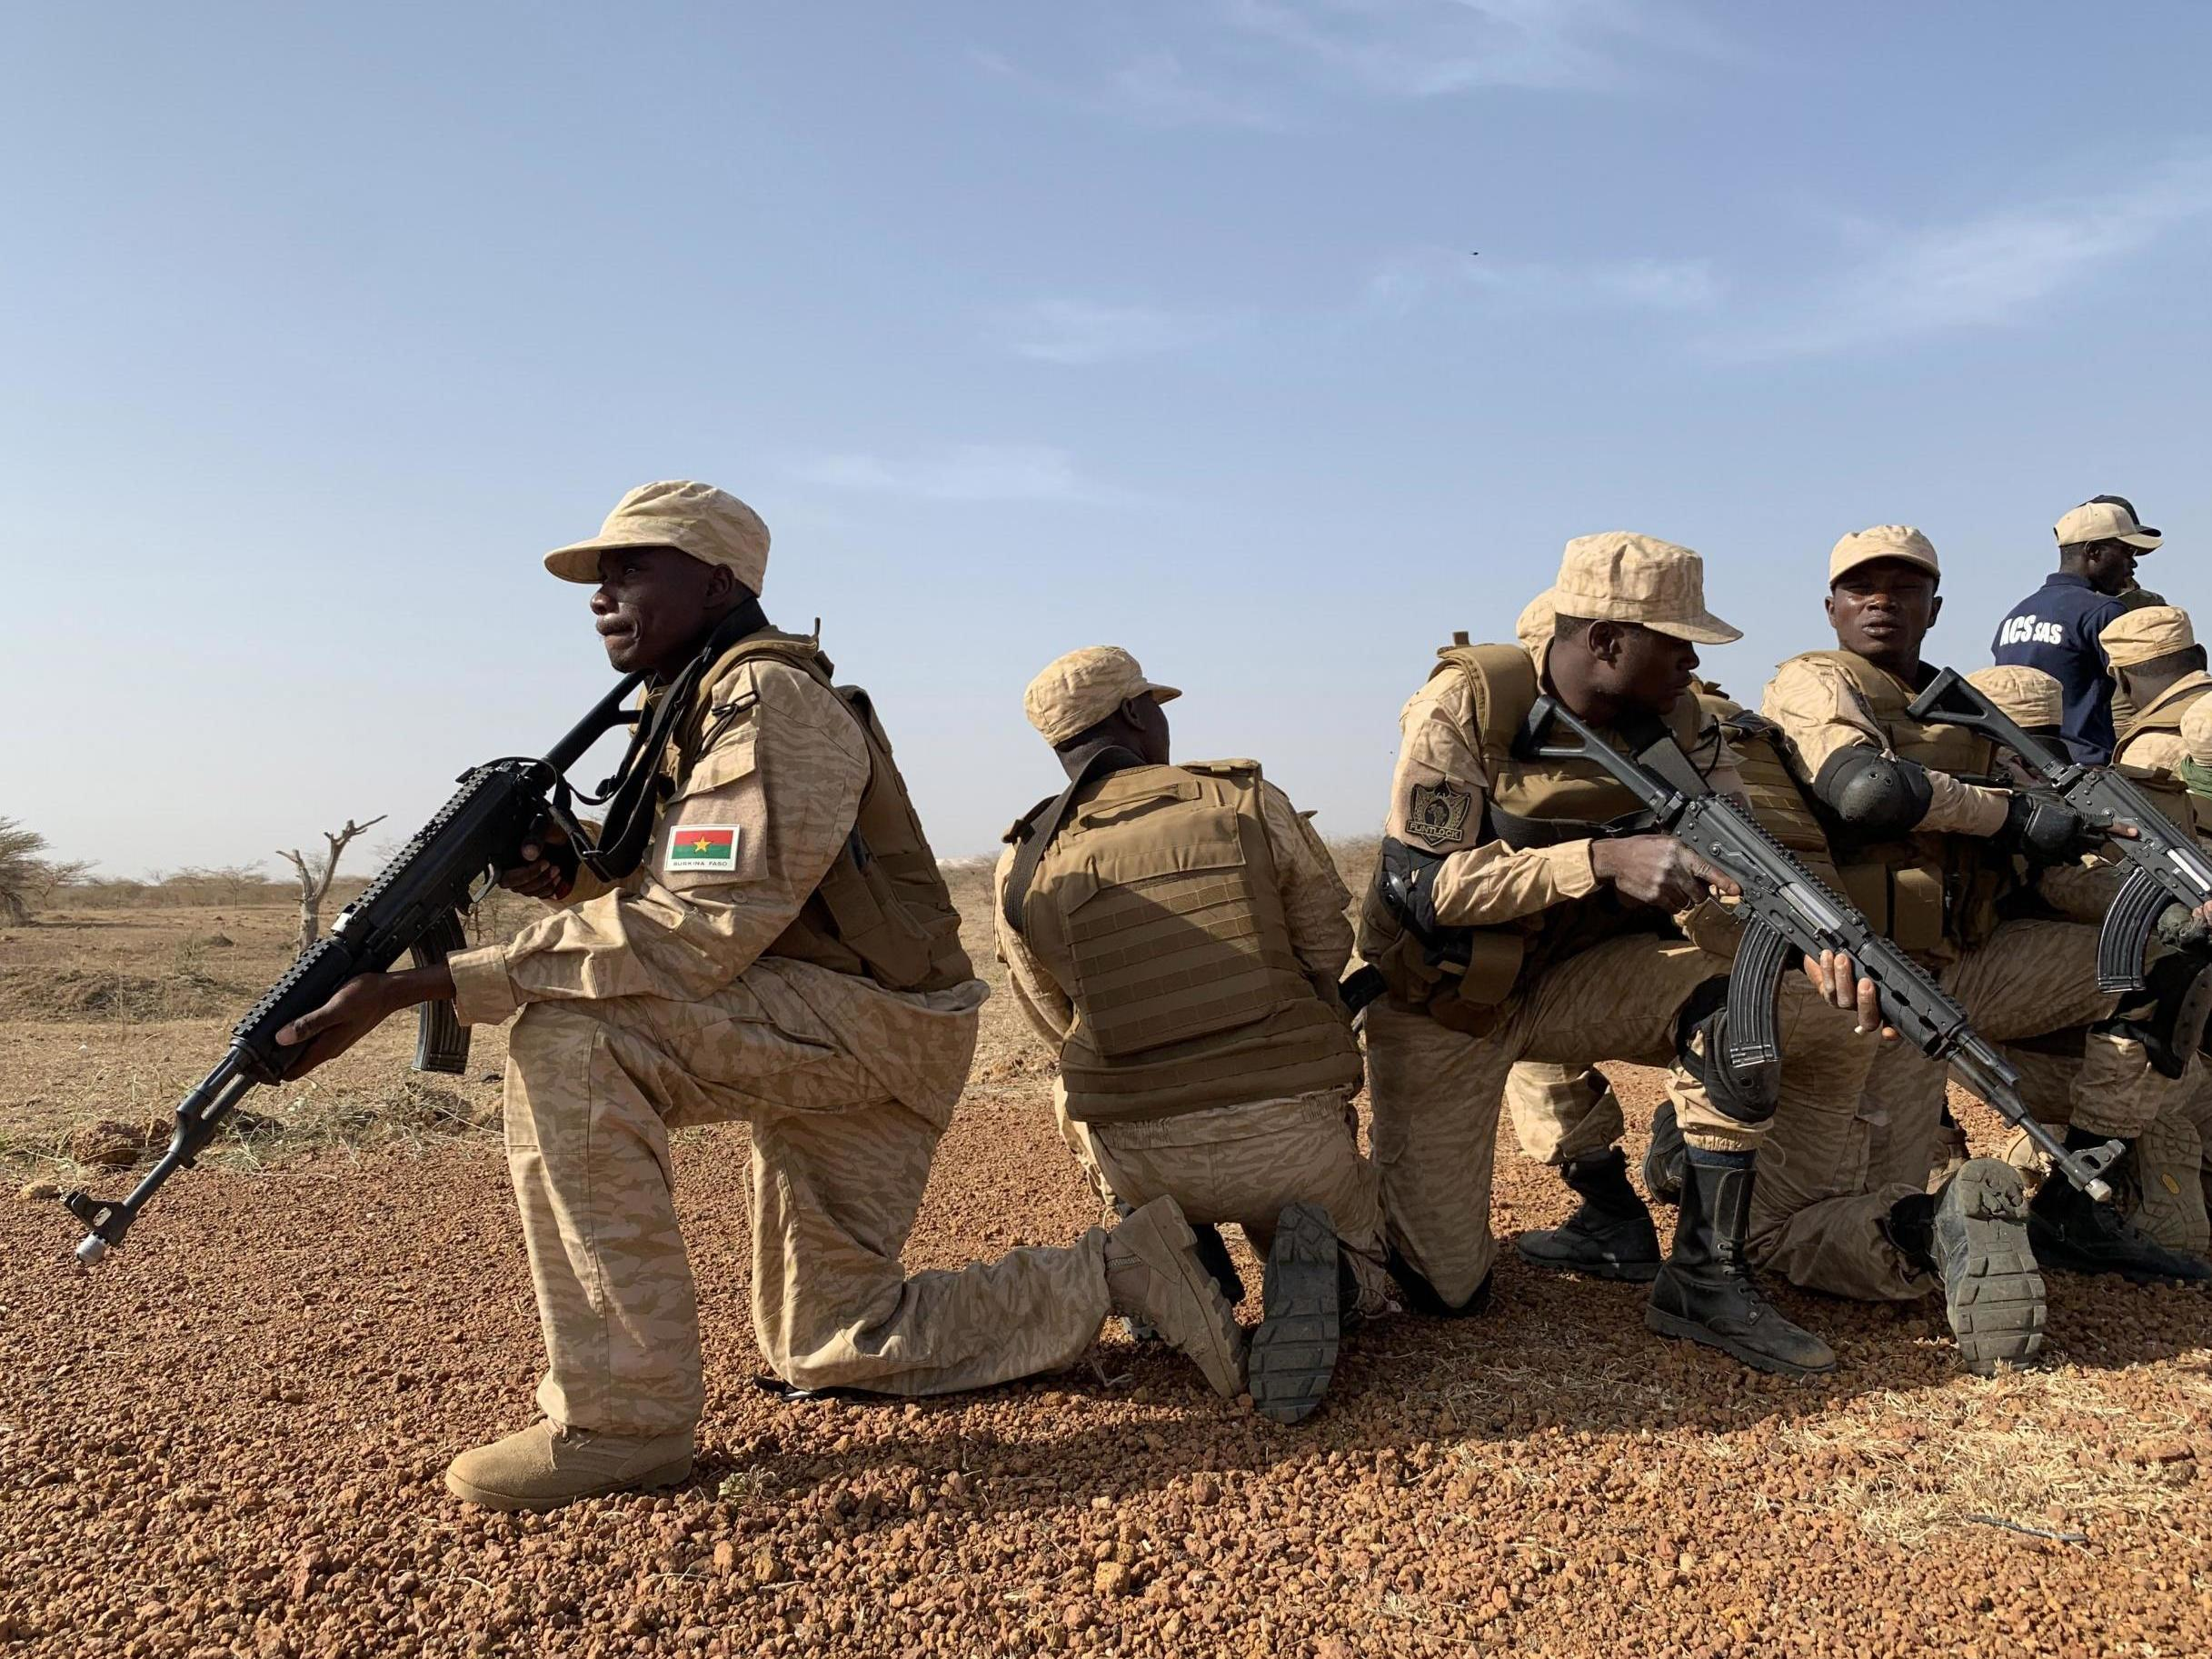 Isis and al-Qaeda join forces in West Africa - independent